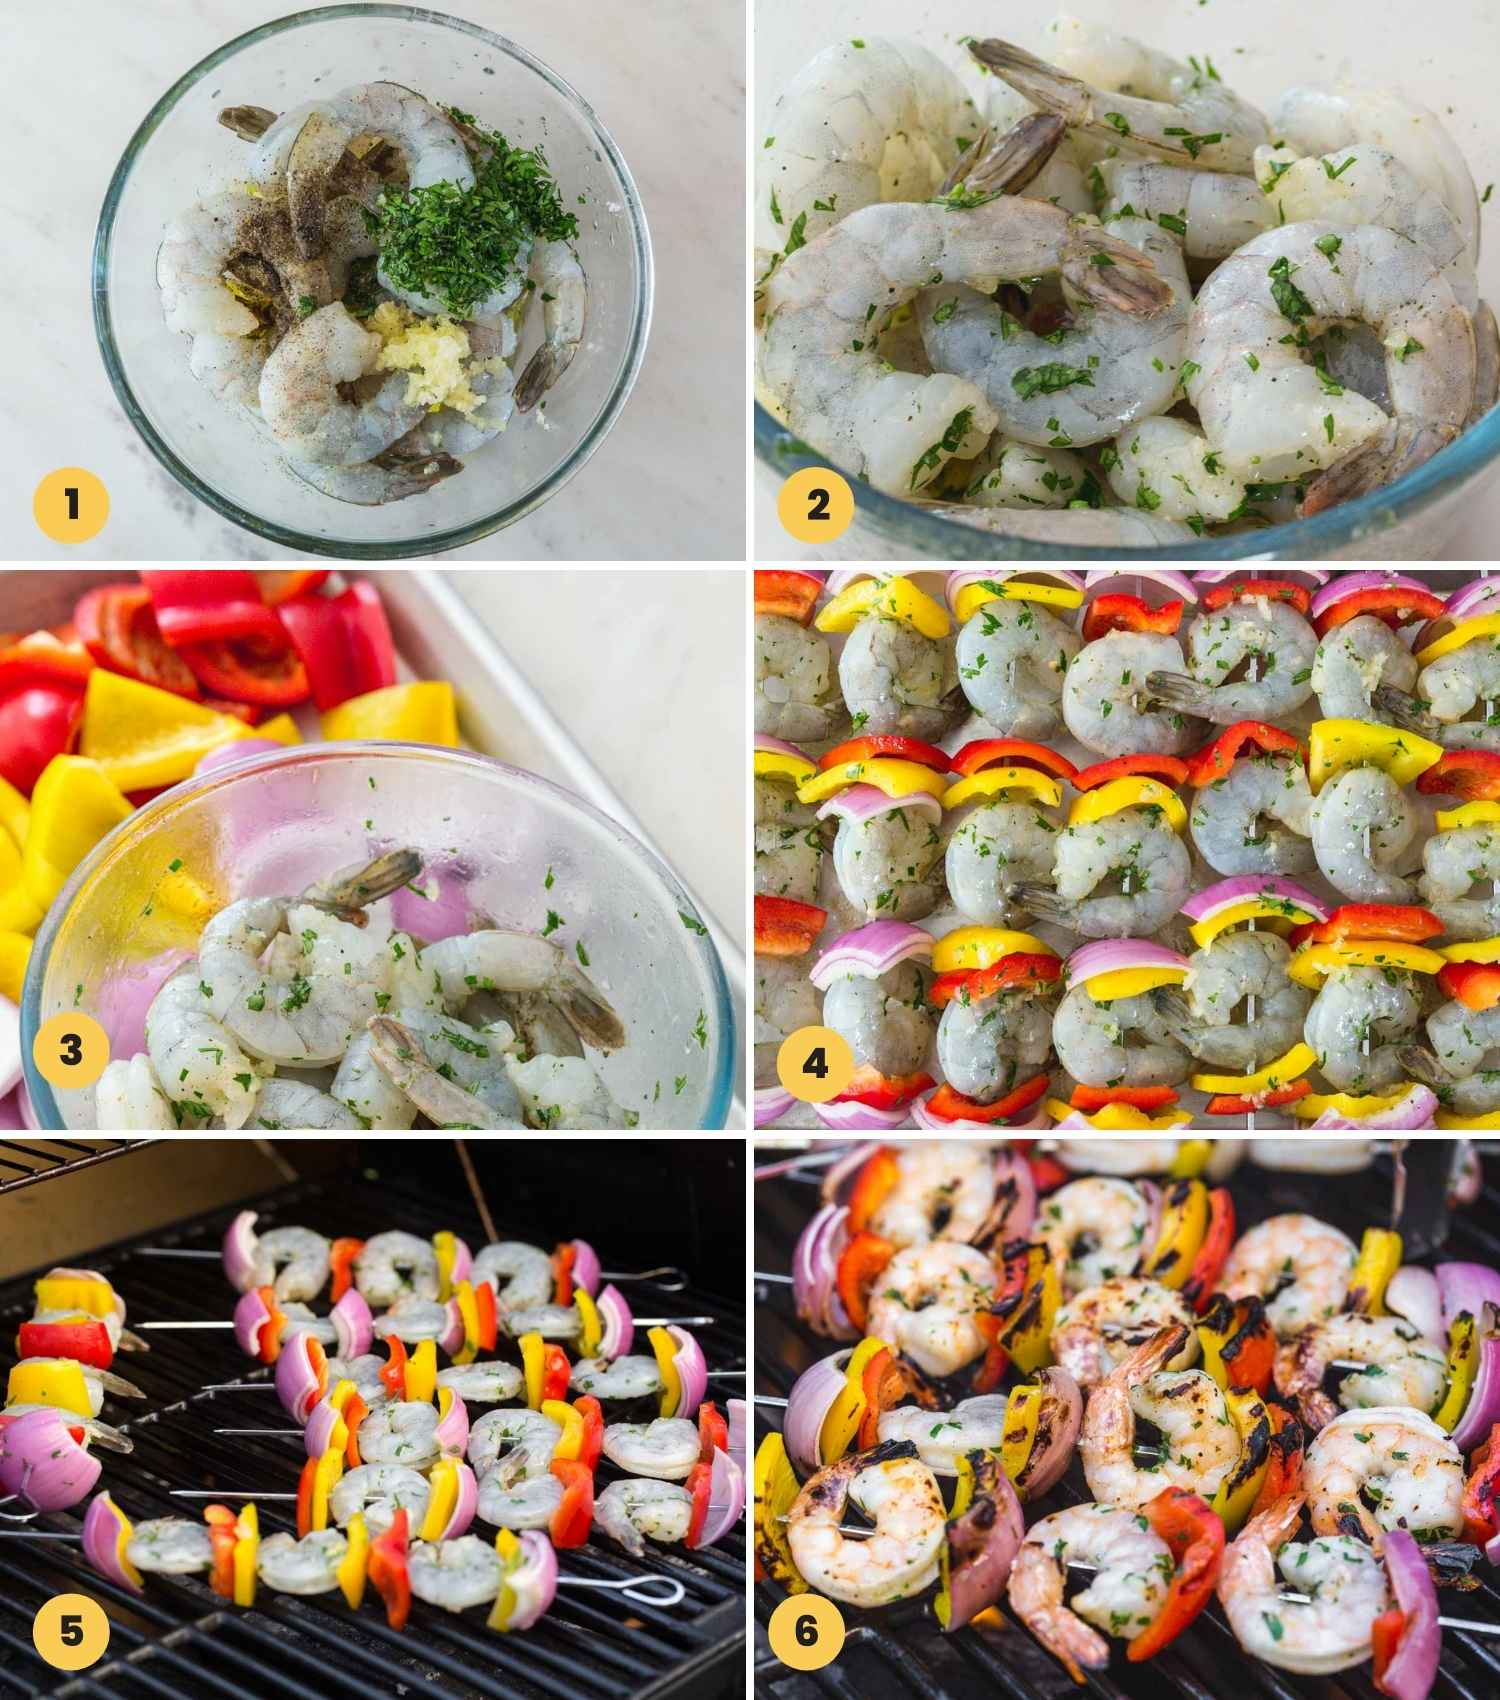 Collage with 6 images showing how to make grilled shrimp kabobs